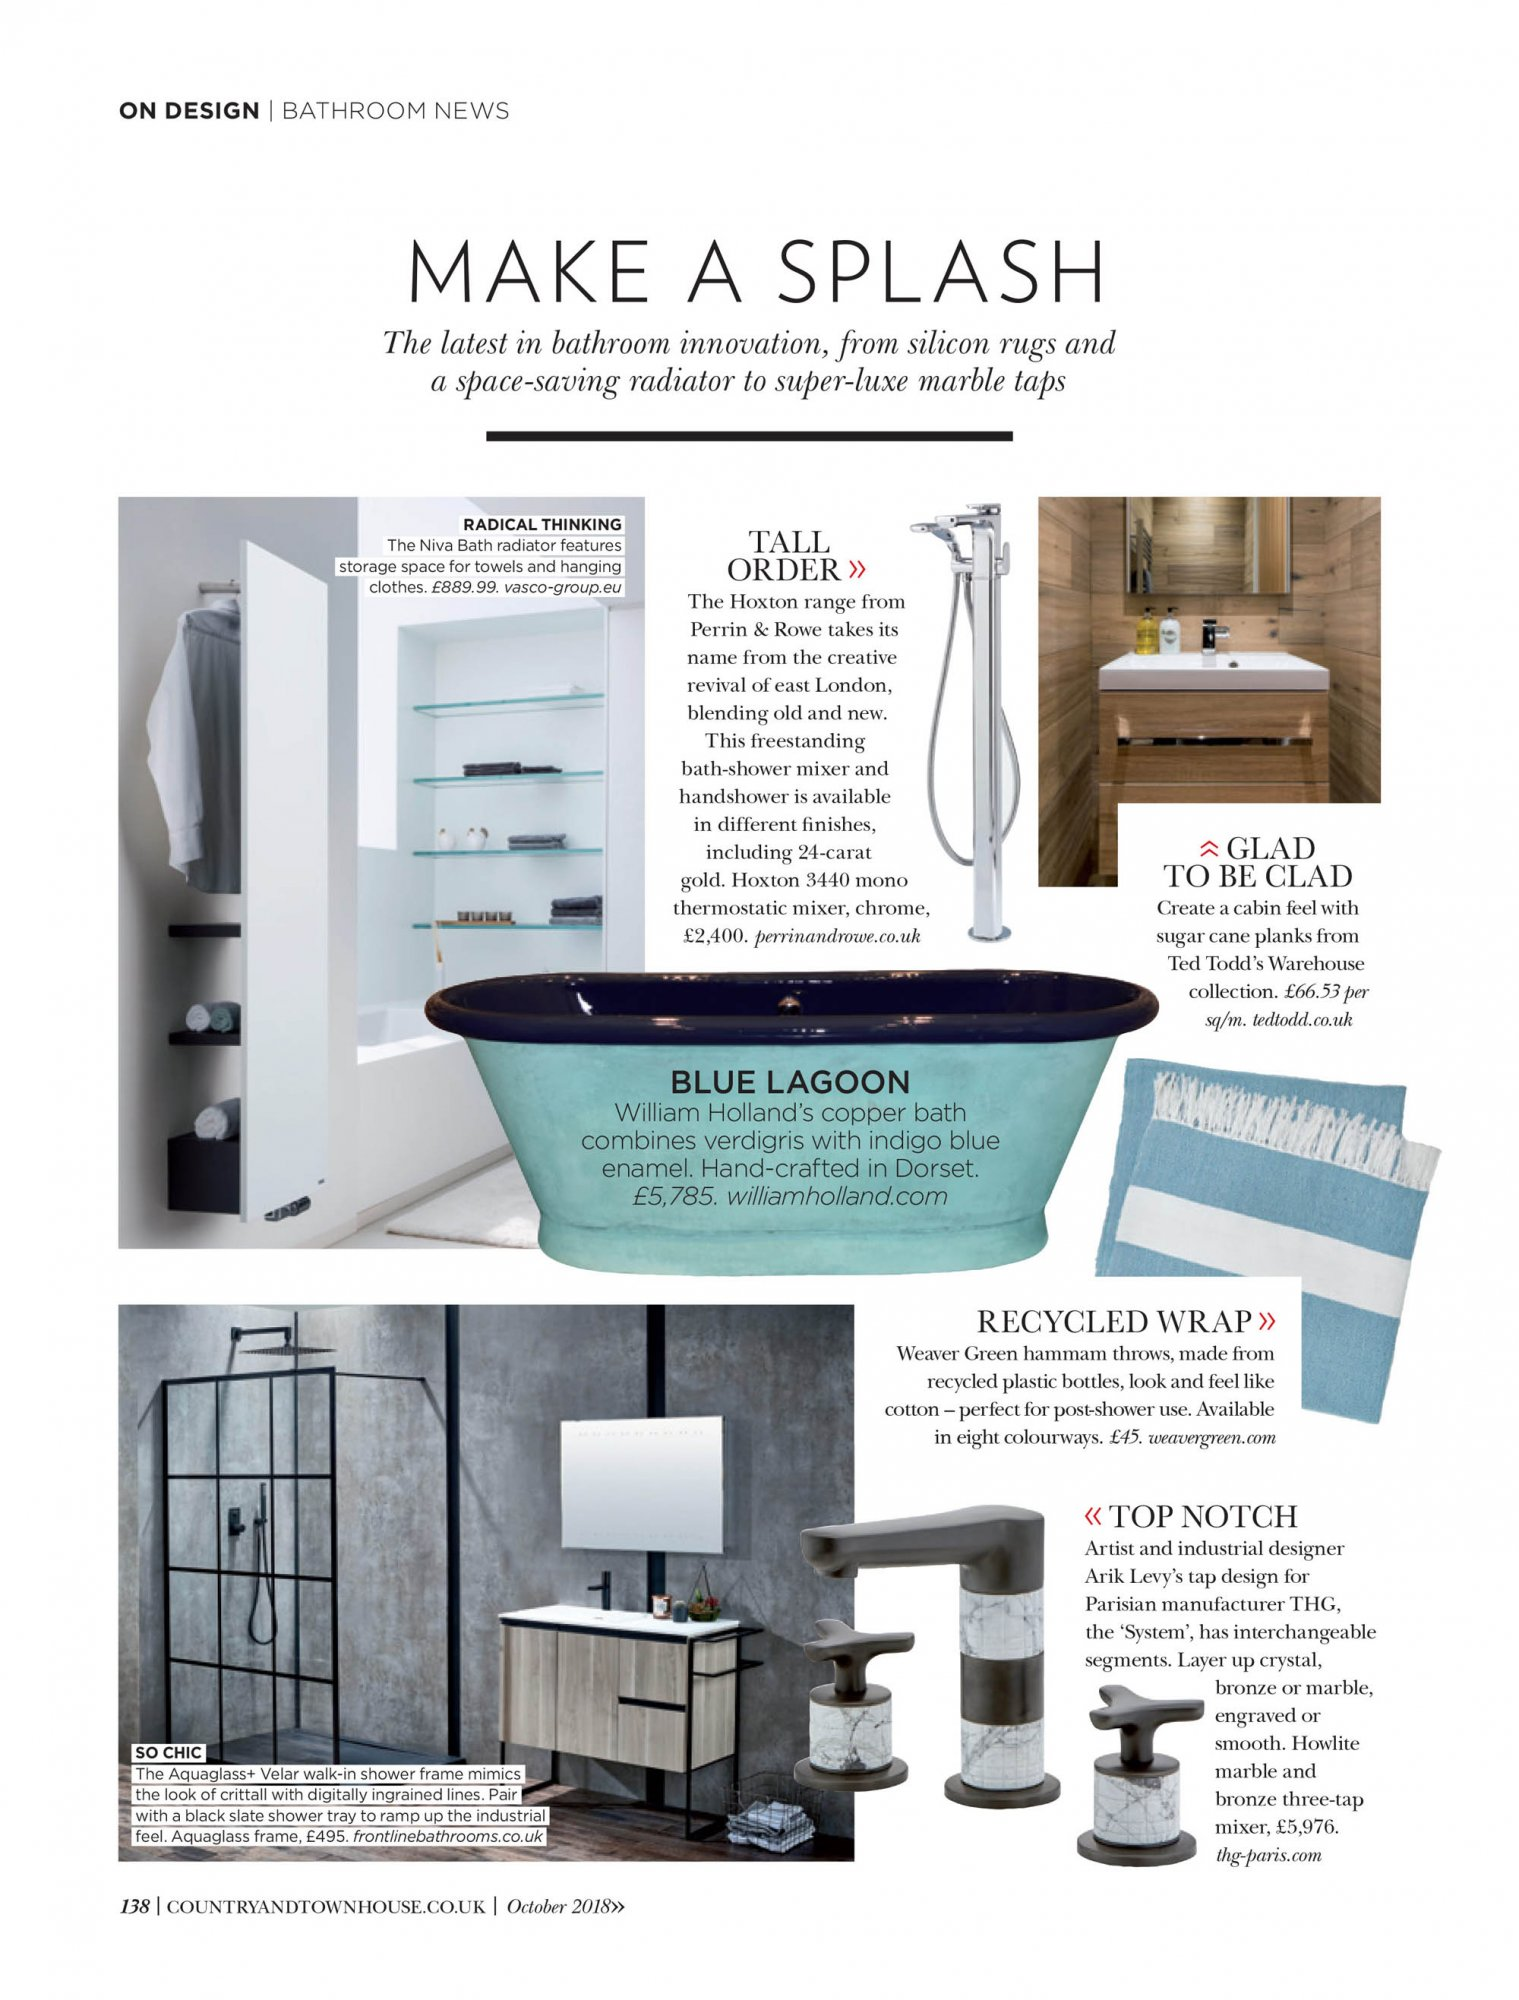 West One Bathrooms Country and Townhouse October 2018 Bathrooms News 1